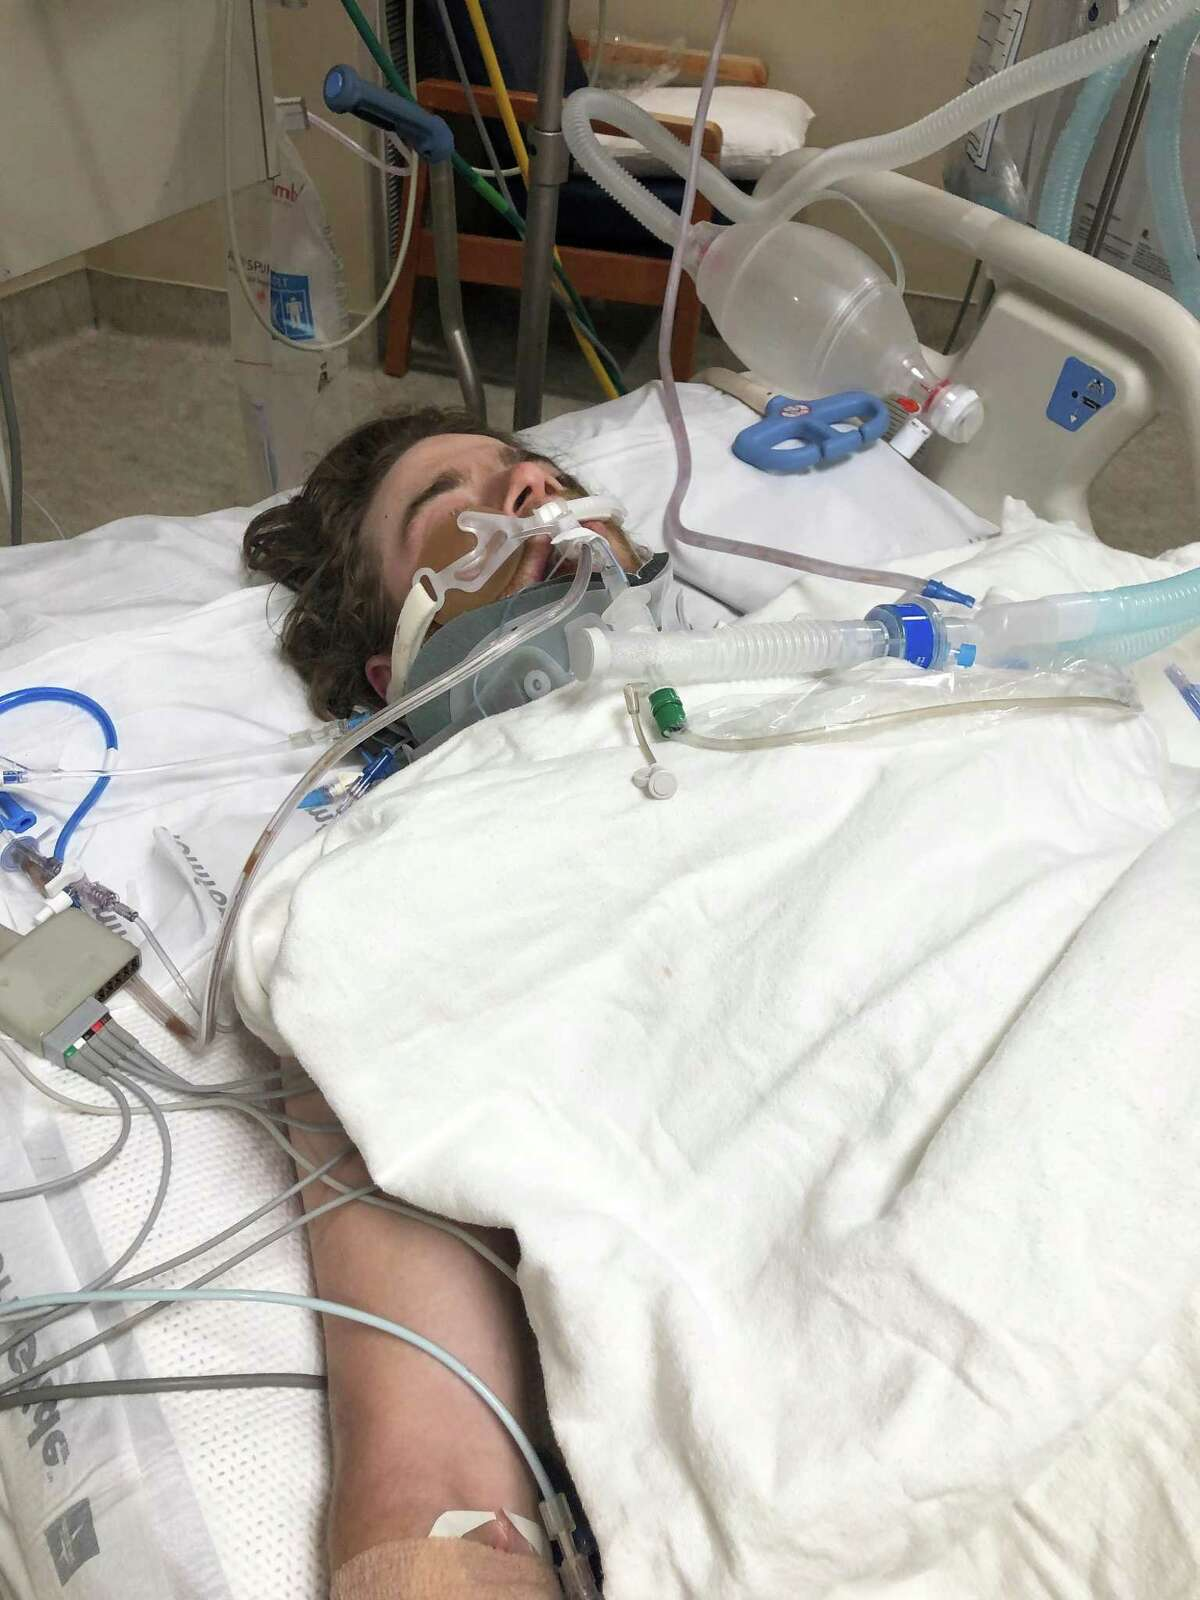 Levi Harris survived a lengthy surgery to repair a tear in one of the main arteries of his heart, a broken sternum in three places, and a collapsed lung after arriving at HCA Houston Healthcare Conroe Regional Hospital on April 12. Harris survived the surgery without bleeding out and left the hospital five days later.